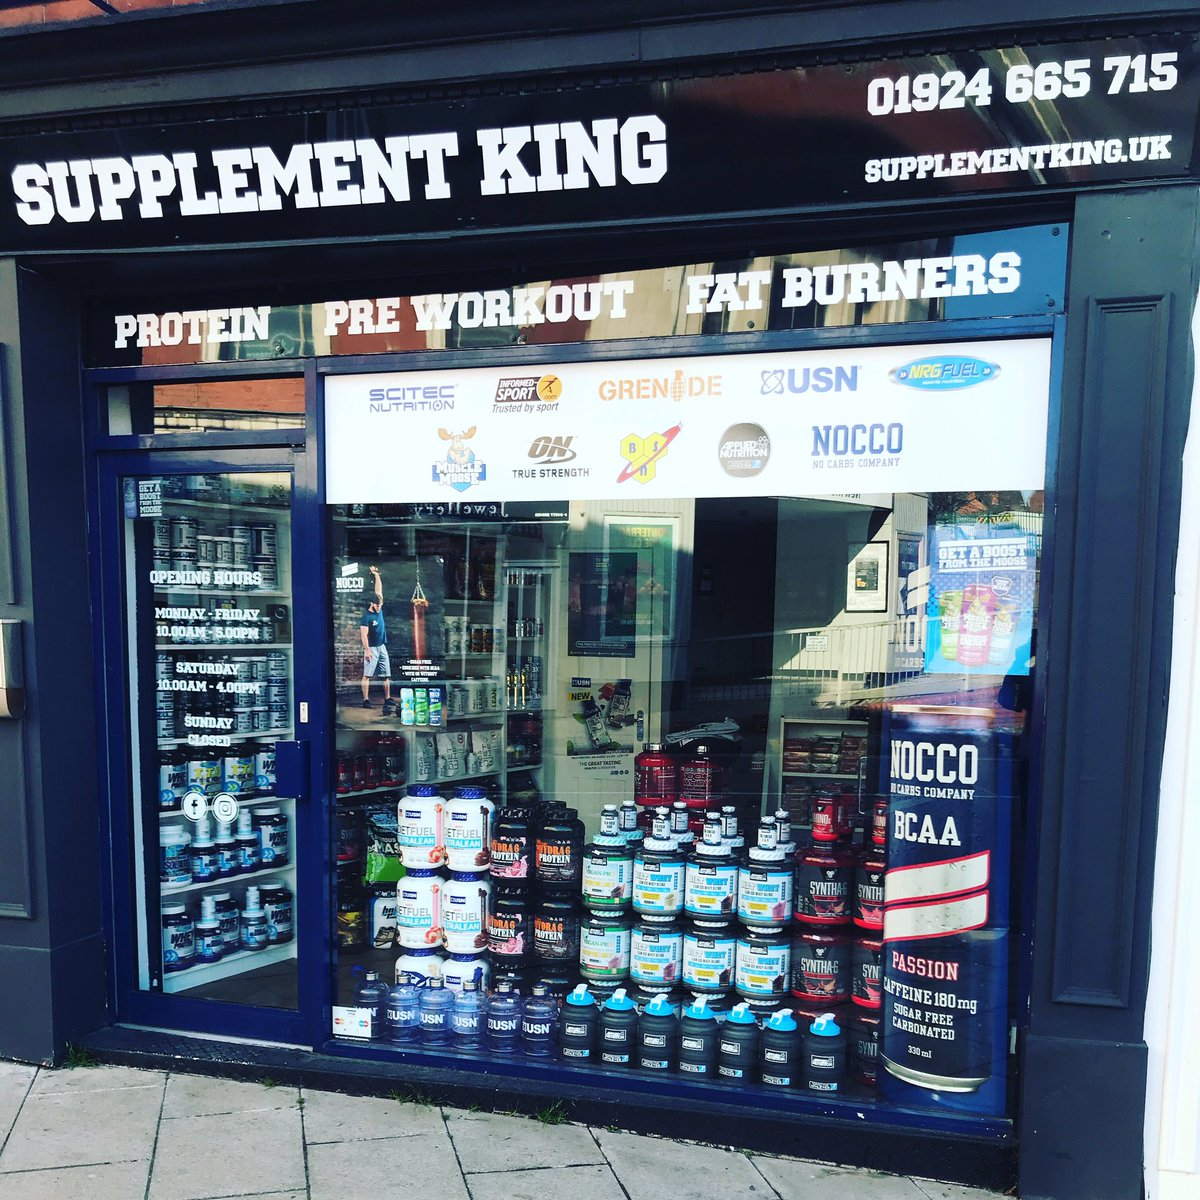 We are open 11-5 today or if you cannot make it in store take a look at our #website SupplementKing.uk #free local same day delivery